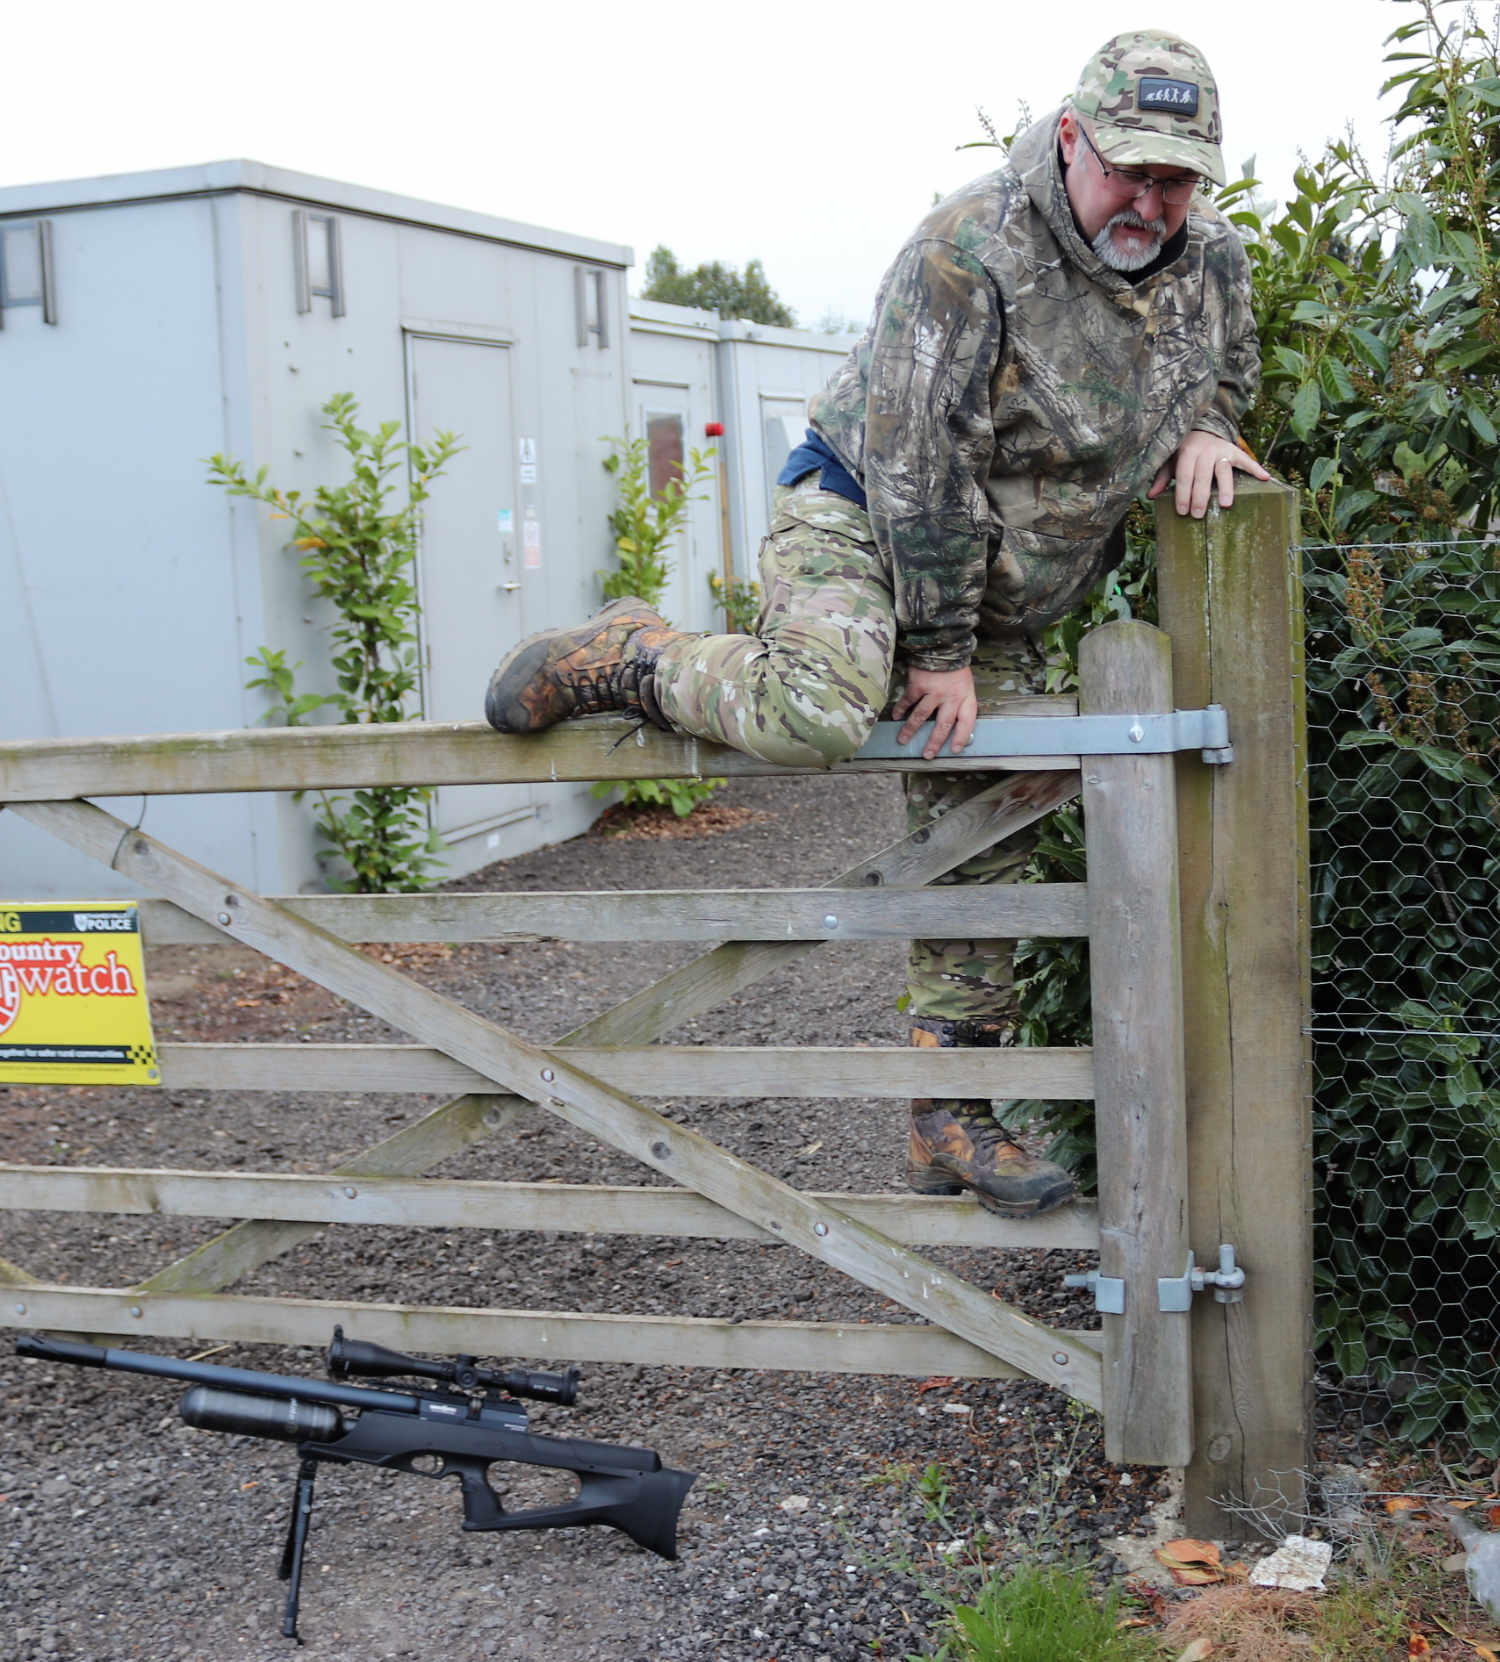 Negotiating obstacles with an airgun